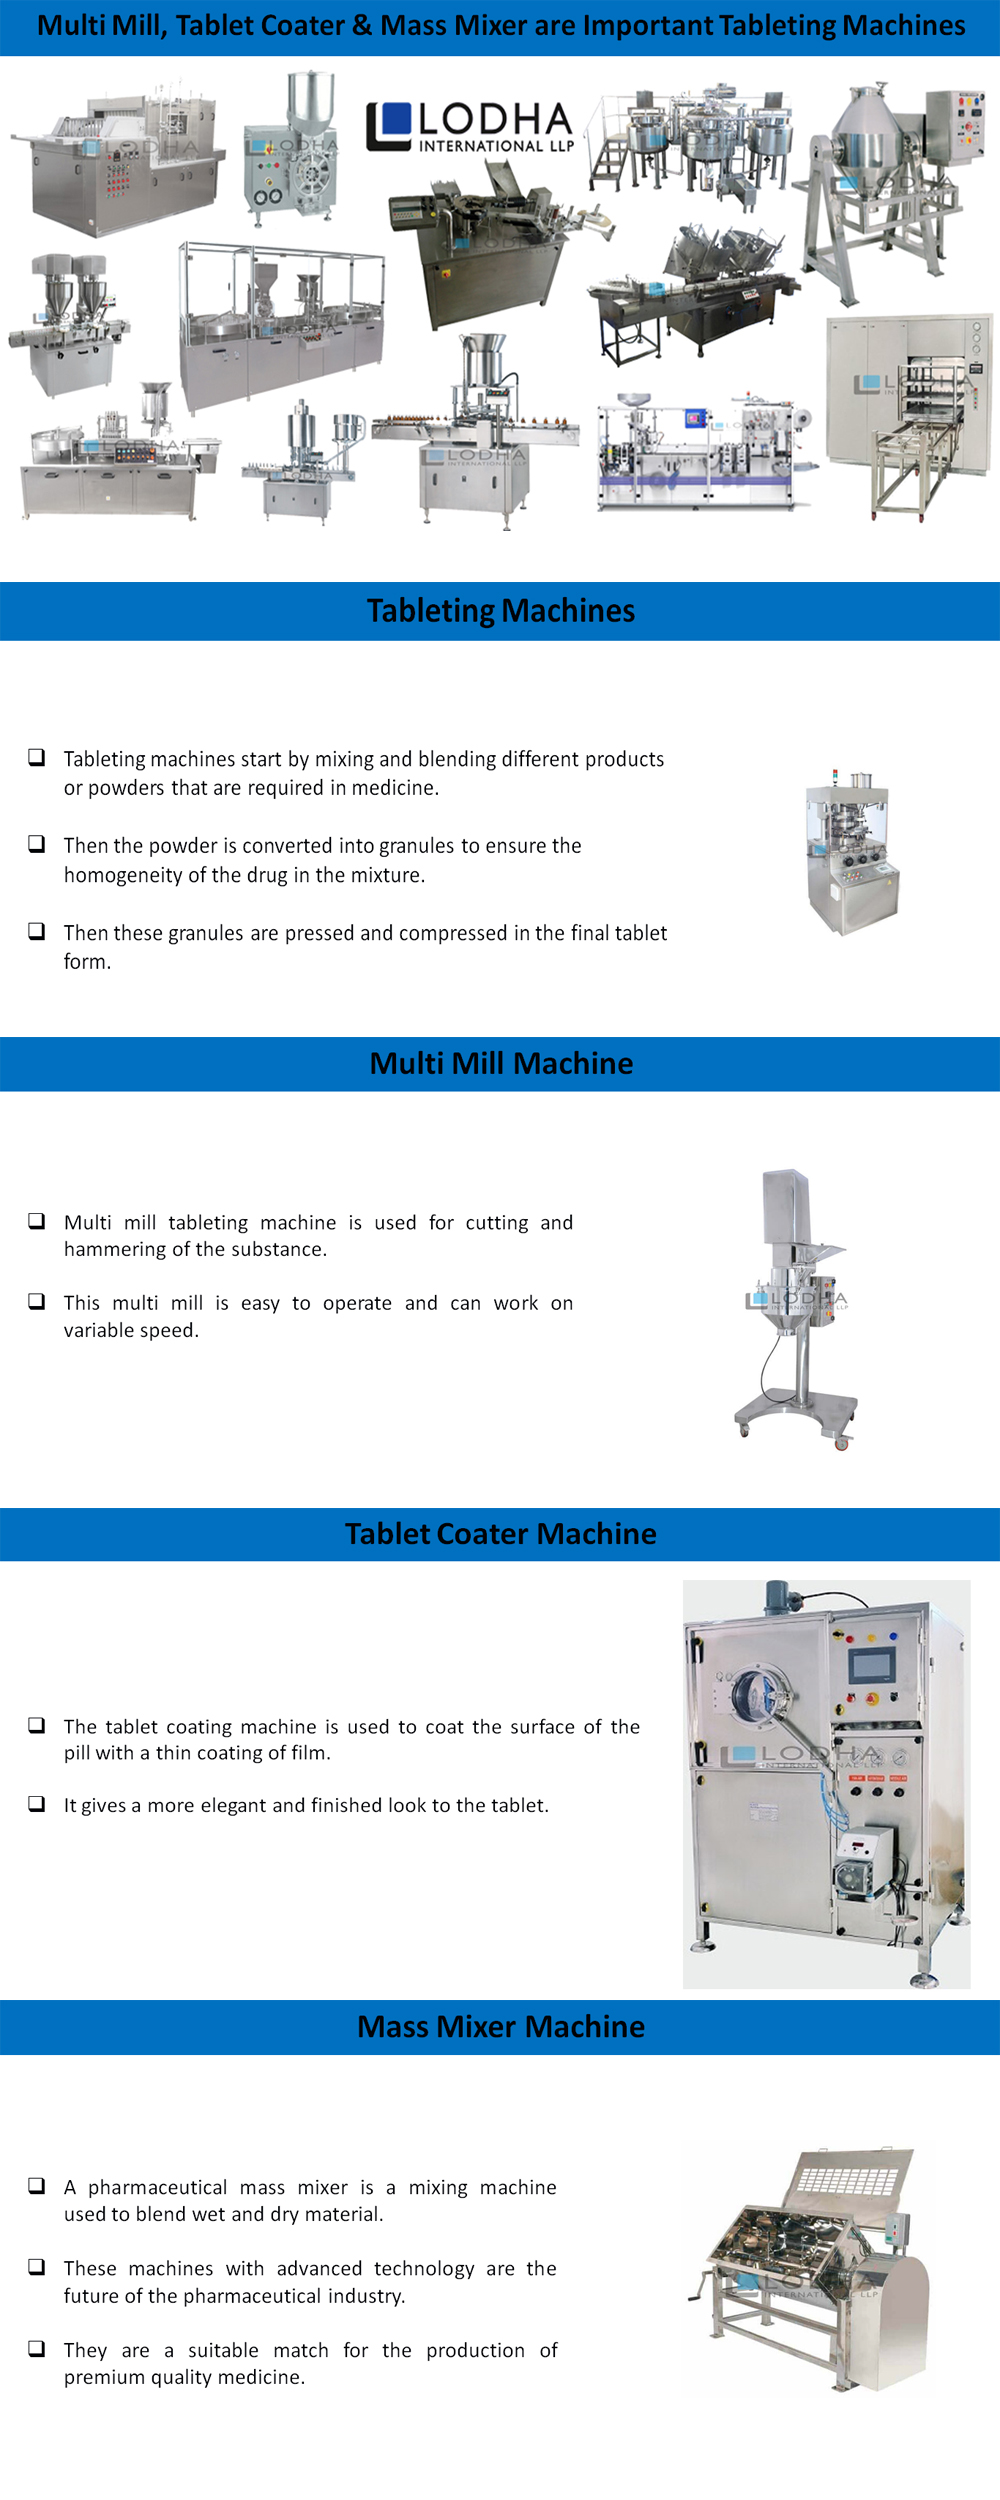 Multi Mill, Tablet Coater & Mass Mixer are Important Tableting Machines